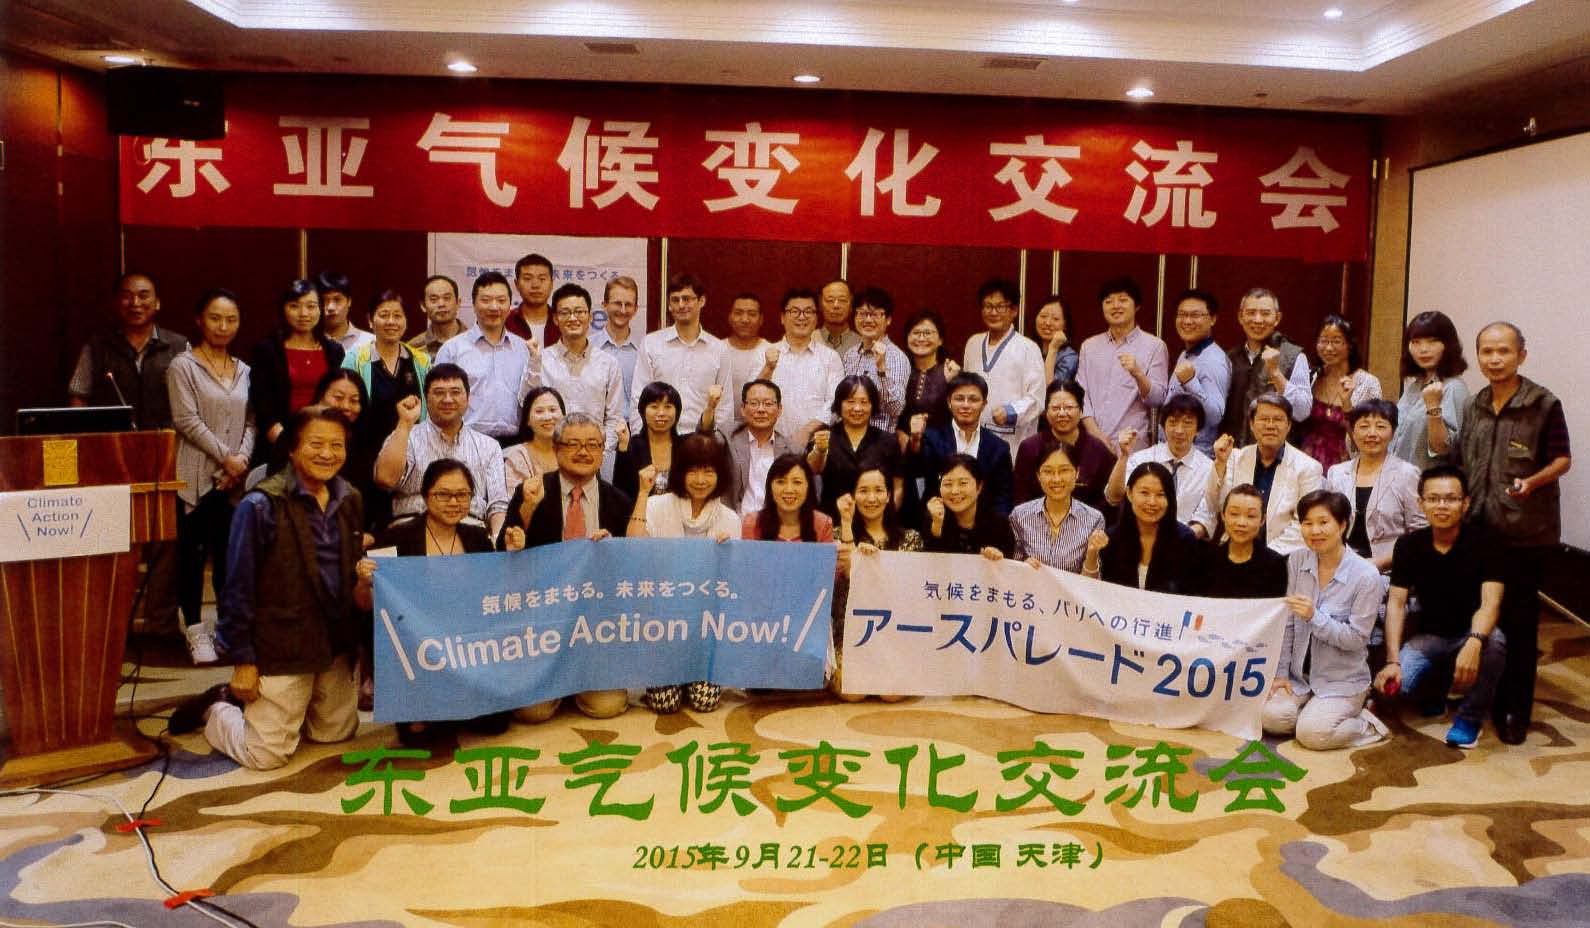 20150921_EastAsiaClimateForum